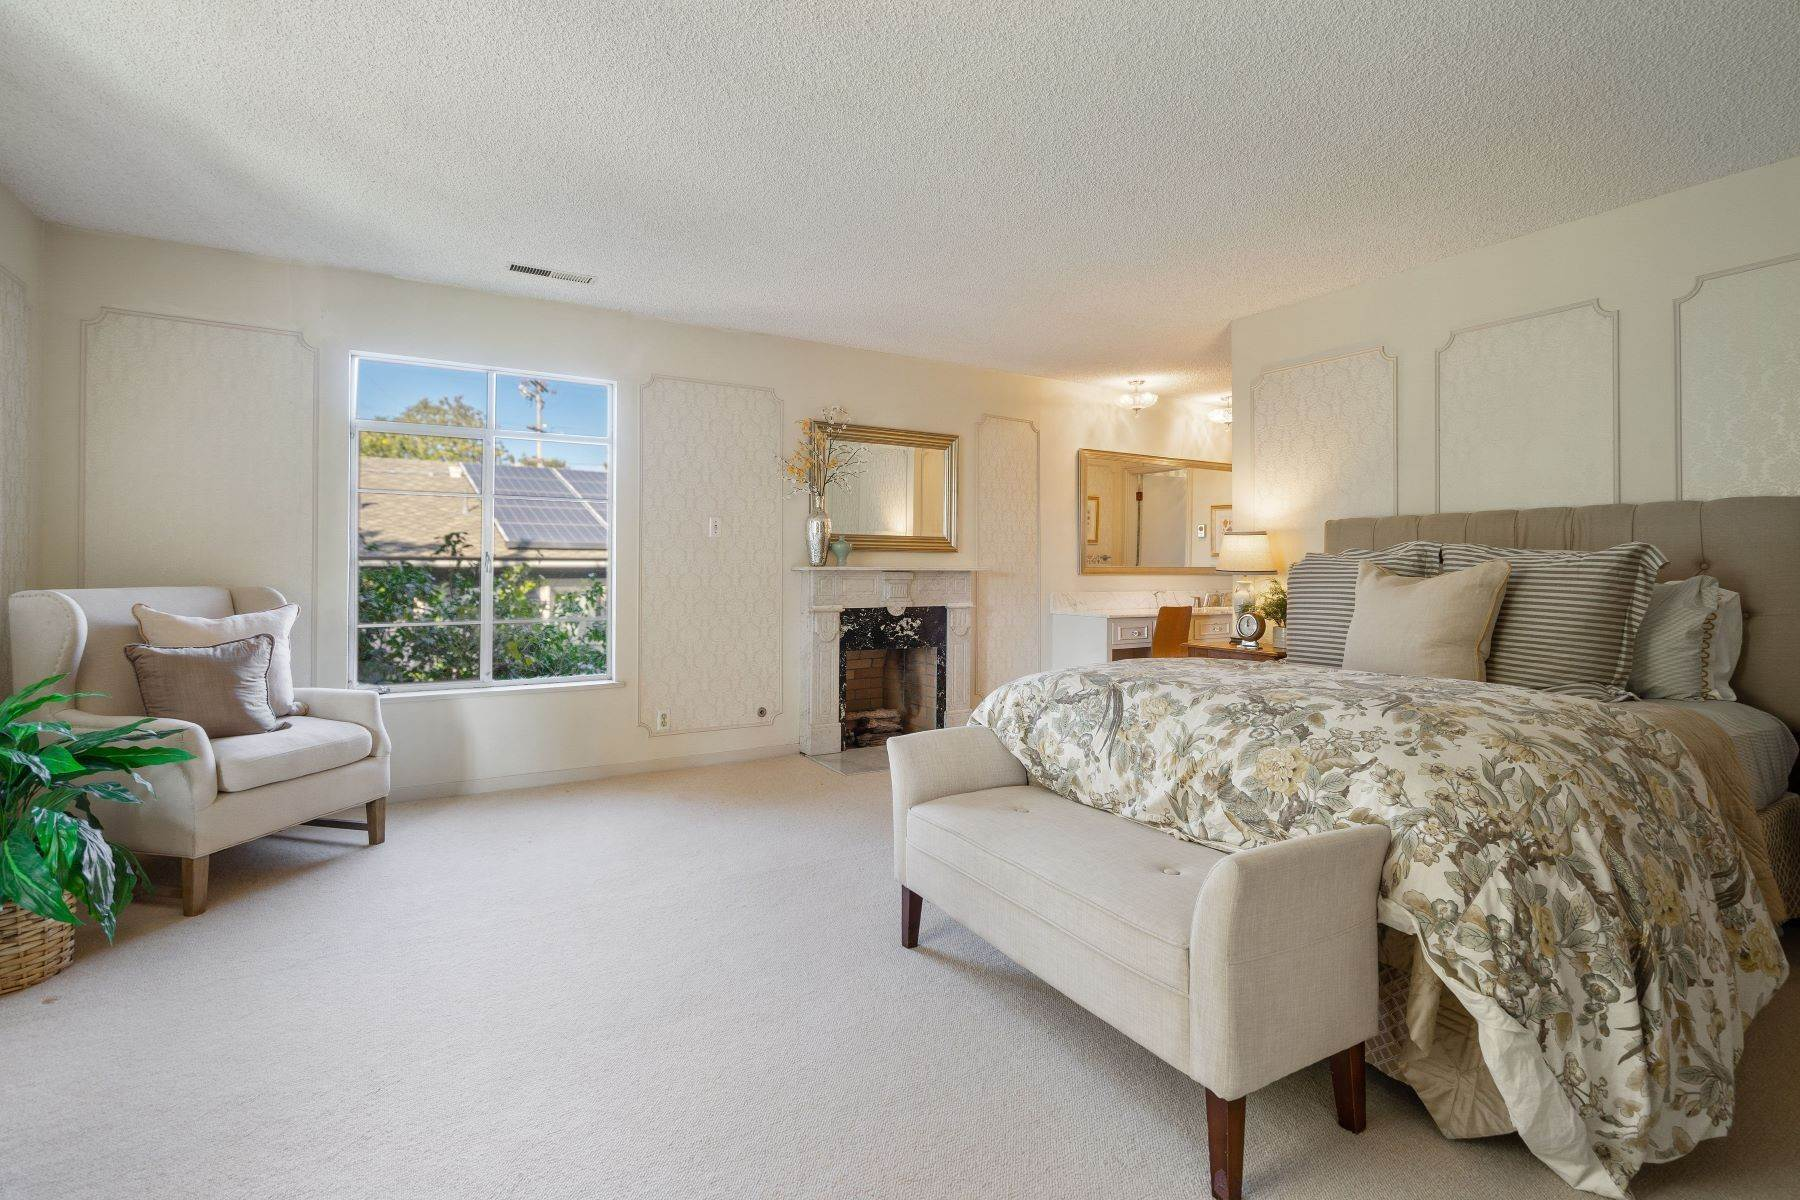 21. Single Family Homes for Sale at Arlington's Debonair Residence 1150 Arlington Boulevard El Cerrito, California 94530 United States